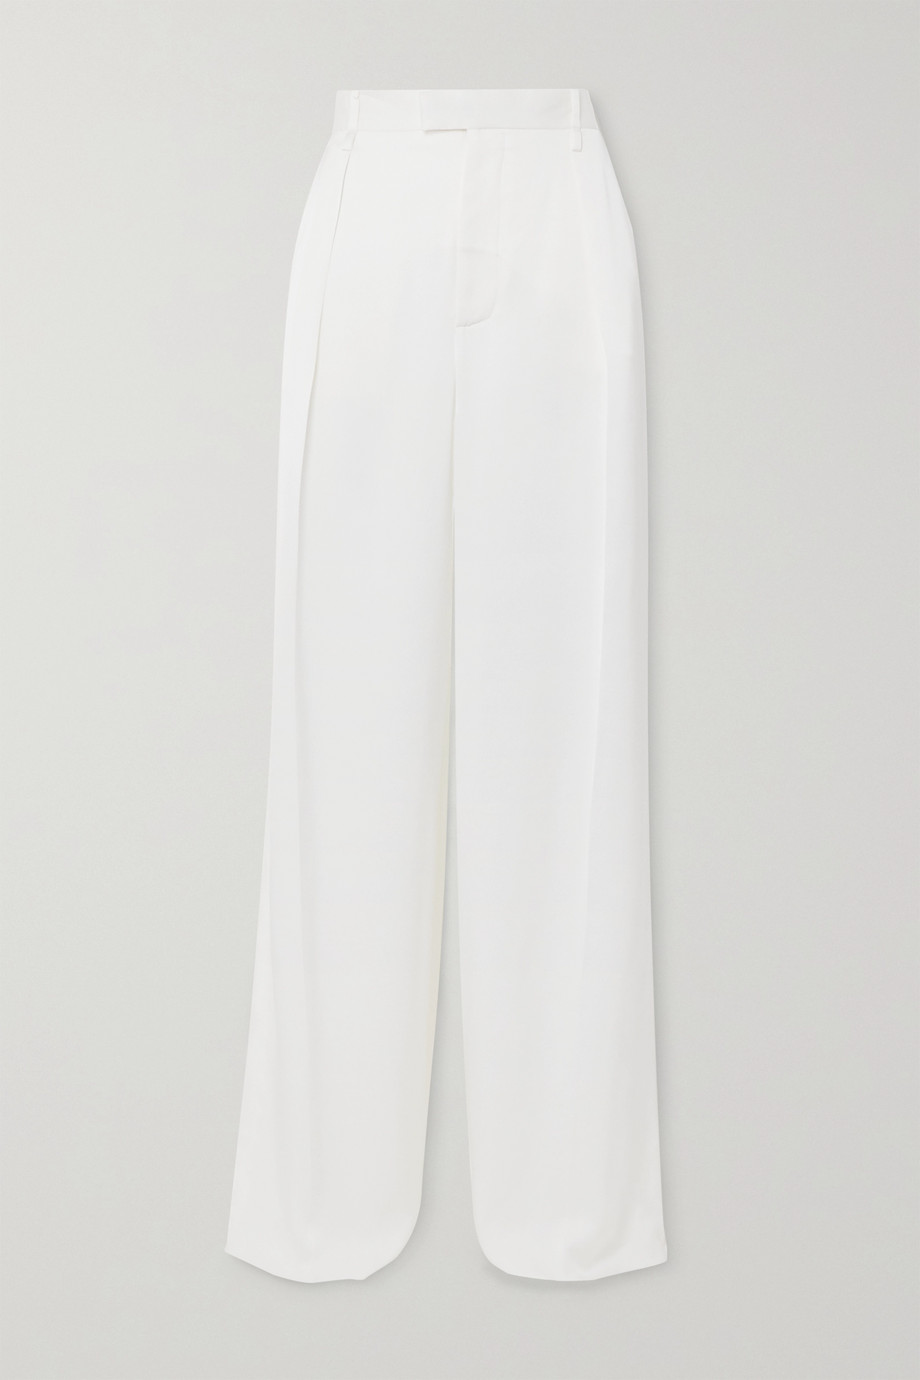 Bottega Veneta Silk-satin pants